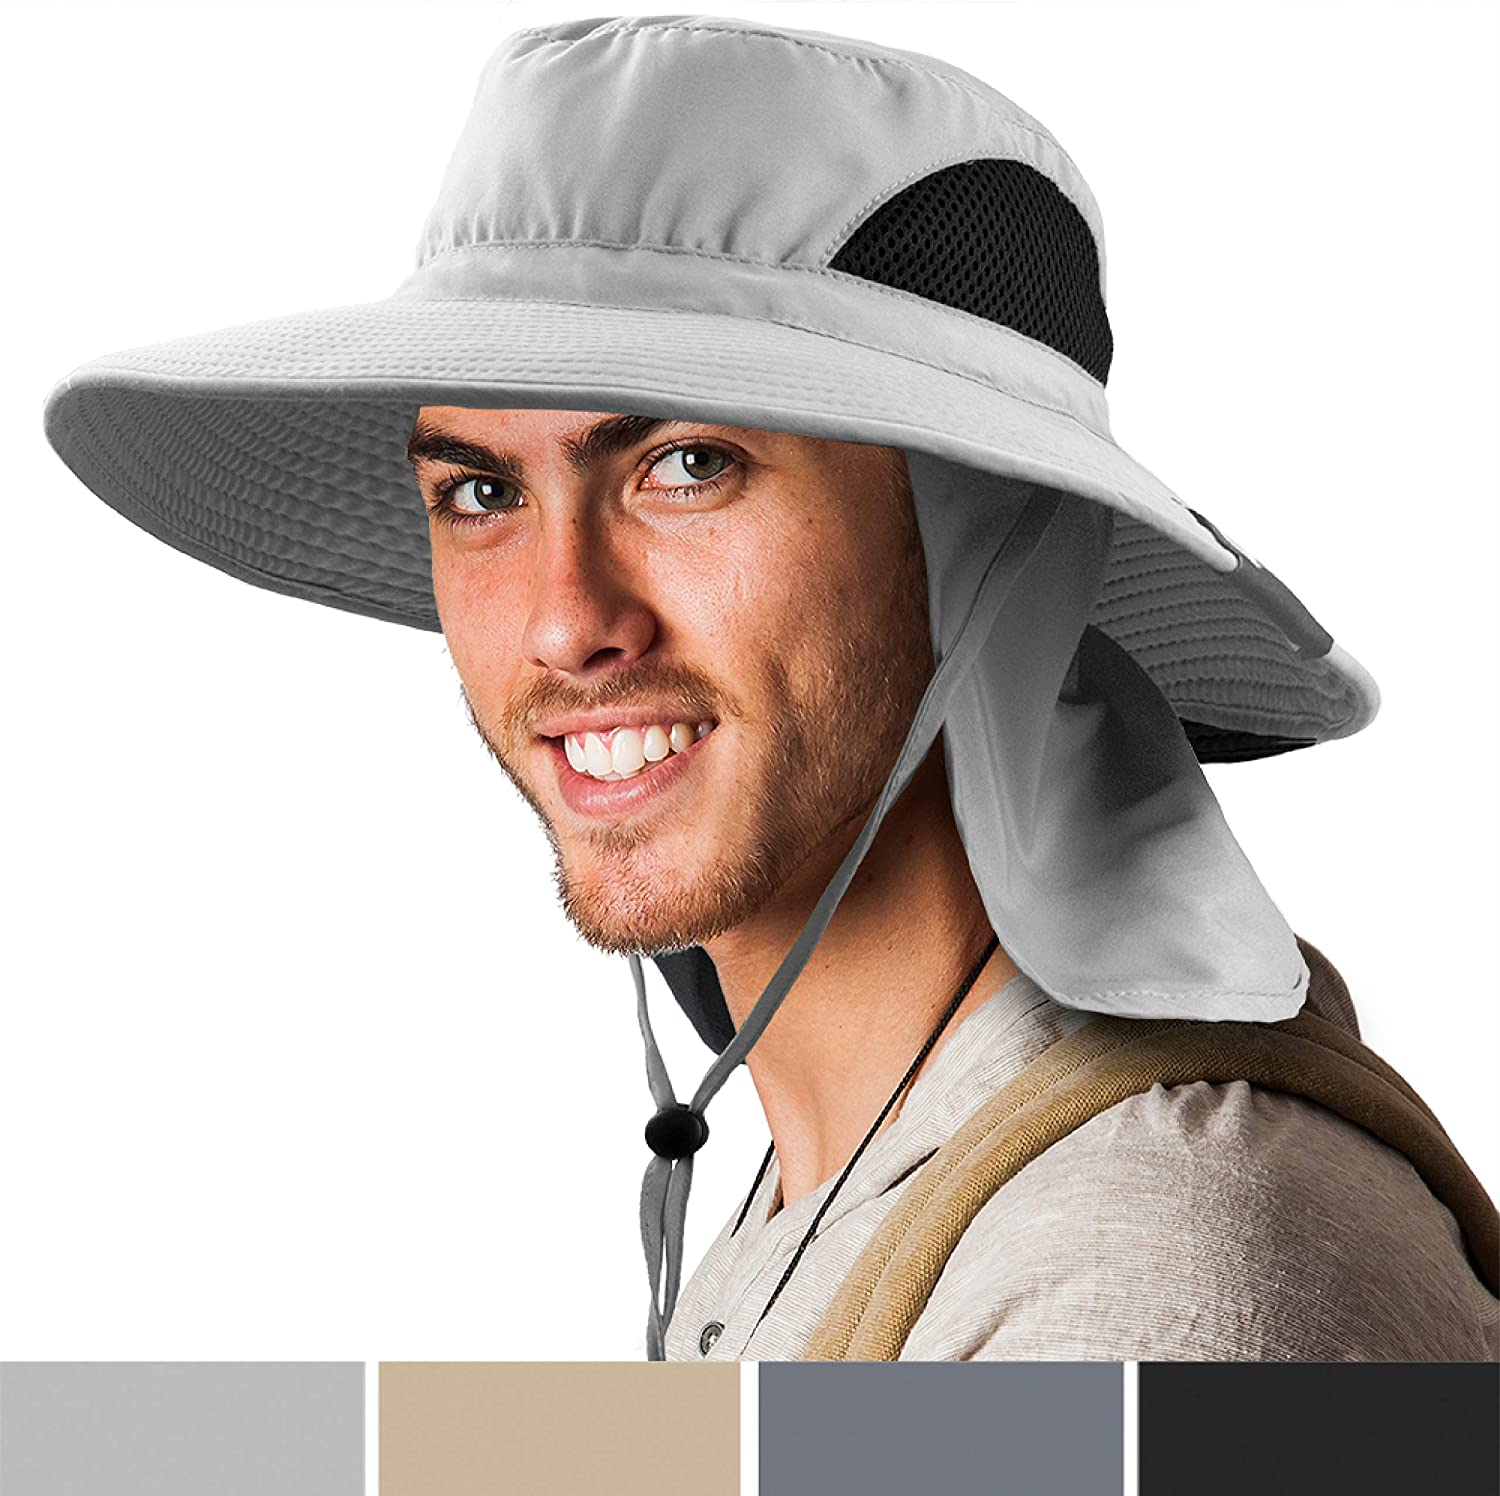 Premium Boonie Hat Wide Brim Sun Hat for Fishing Hiking Outdoor Men Women UPF50+